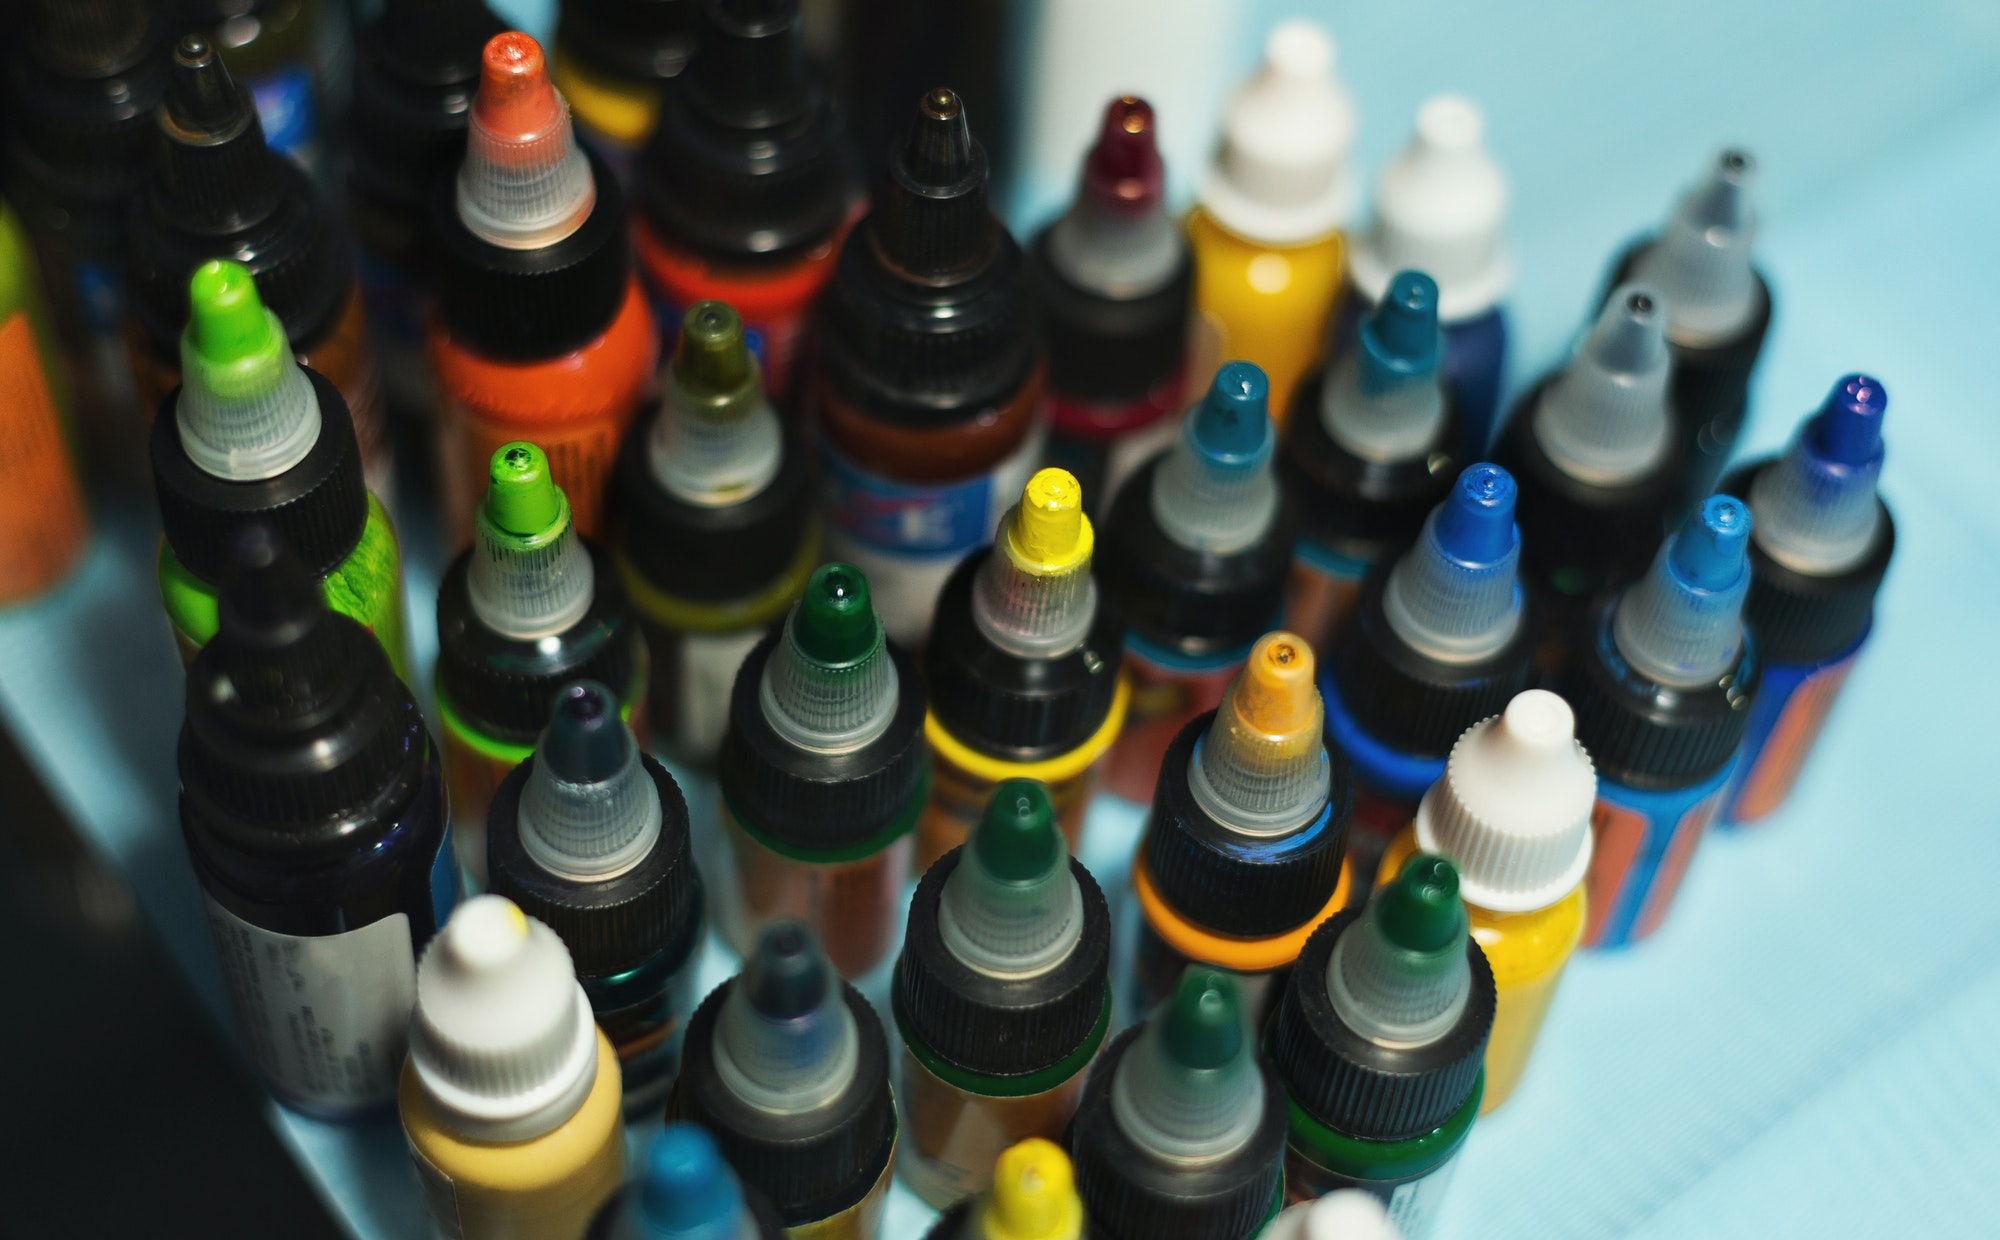 Multiple bottles with colorful inks for tattoo